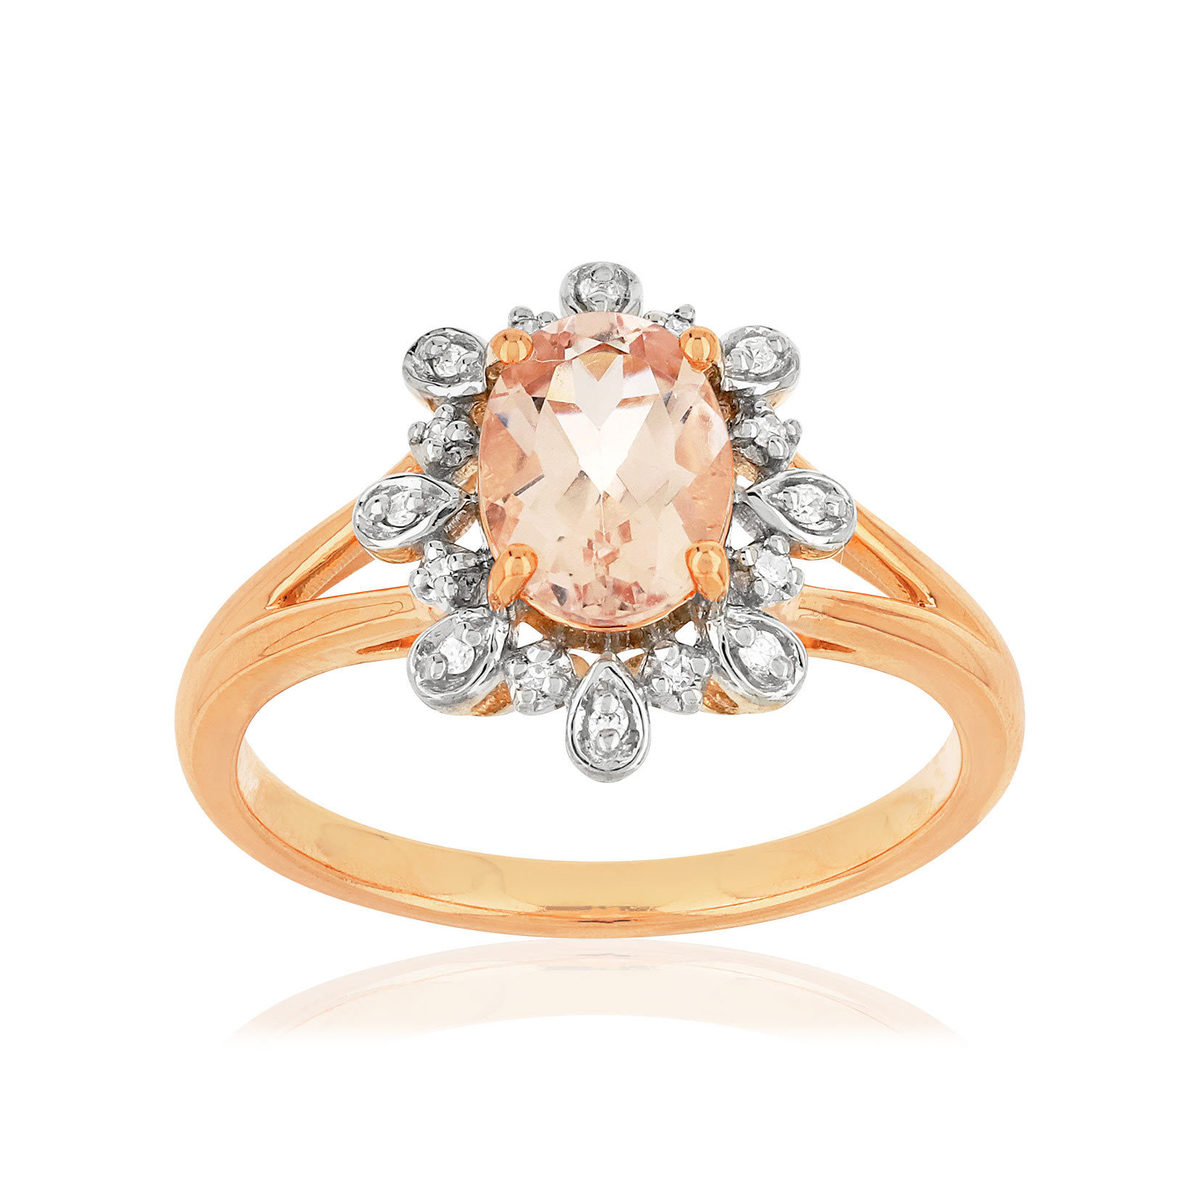 Bague MATY Or 375 2 tons Diamants et Morganite - vue V1